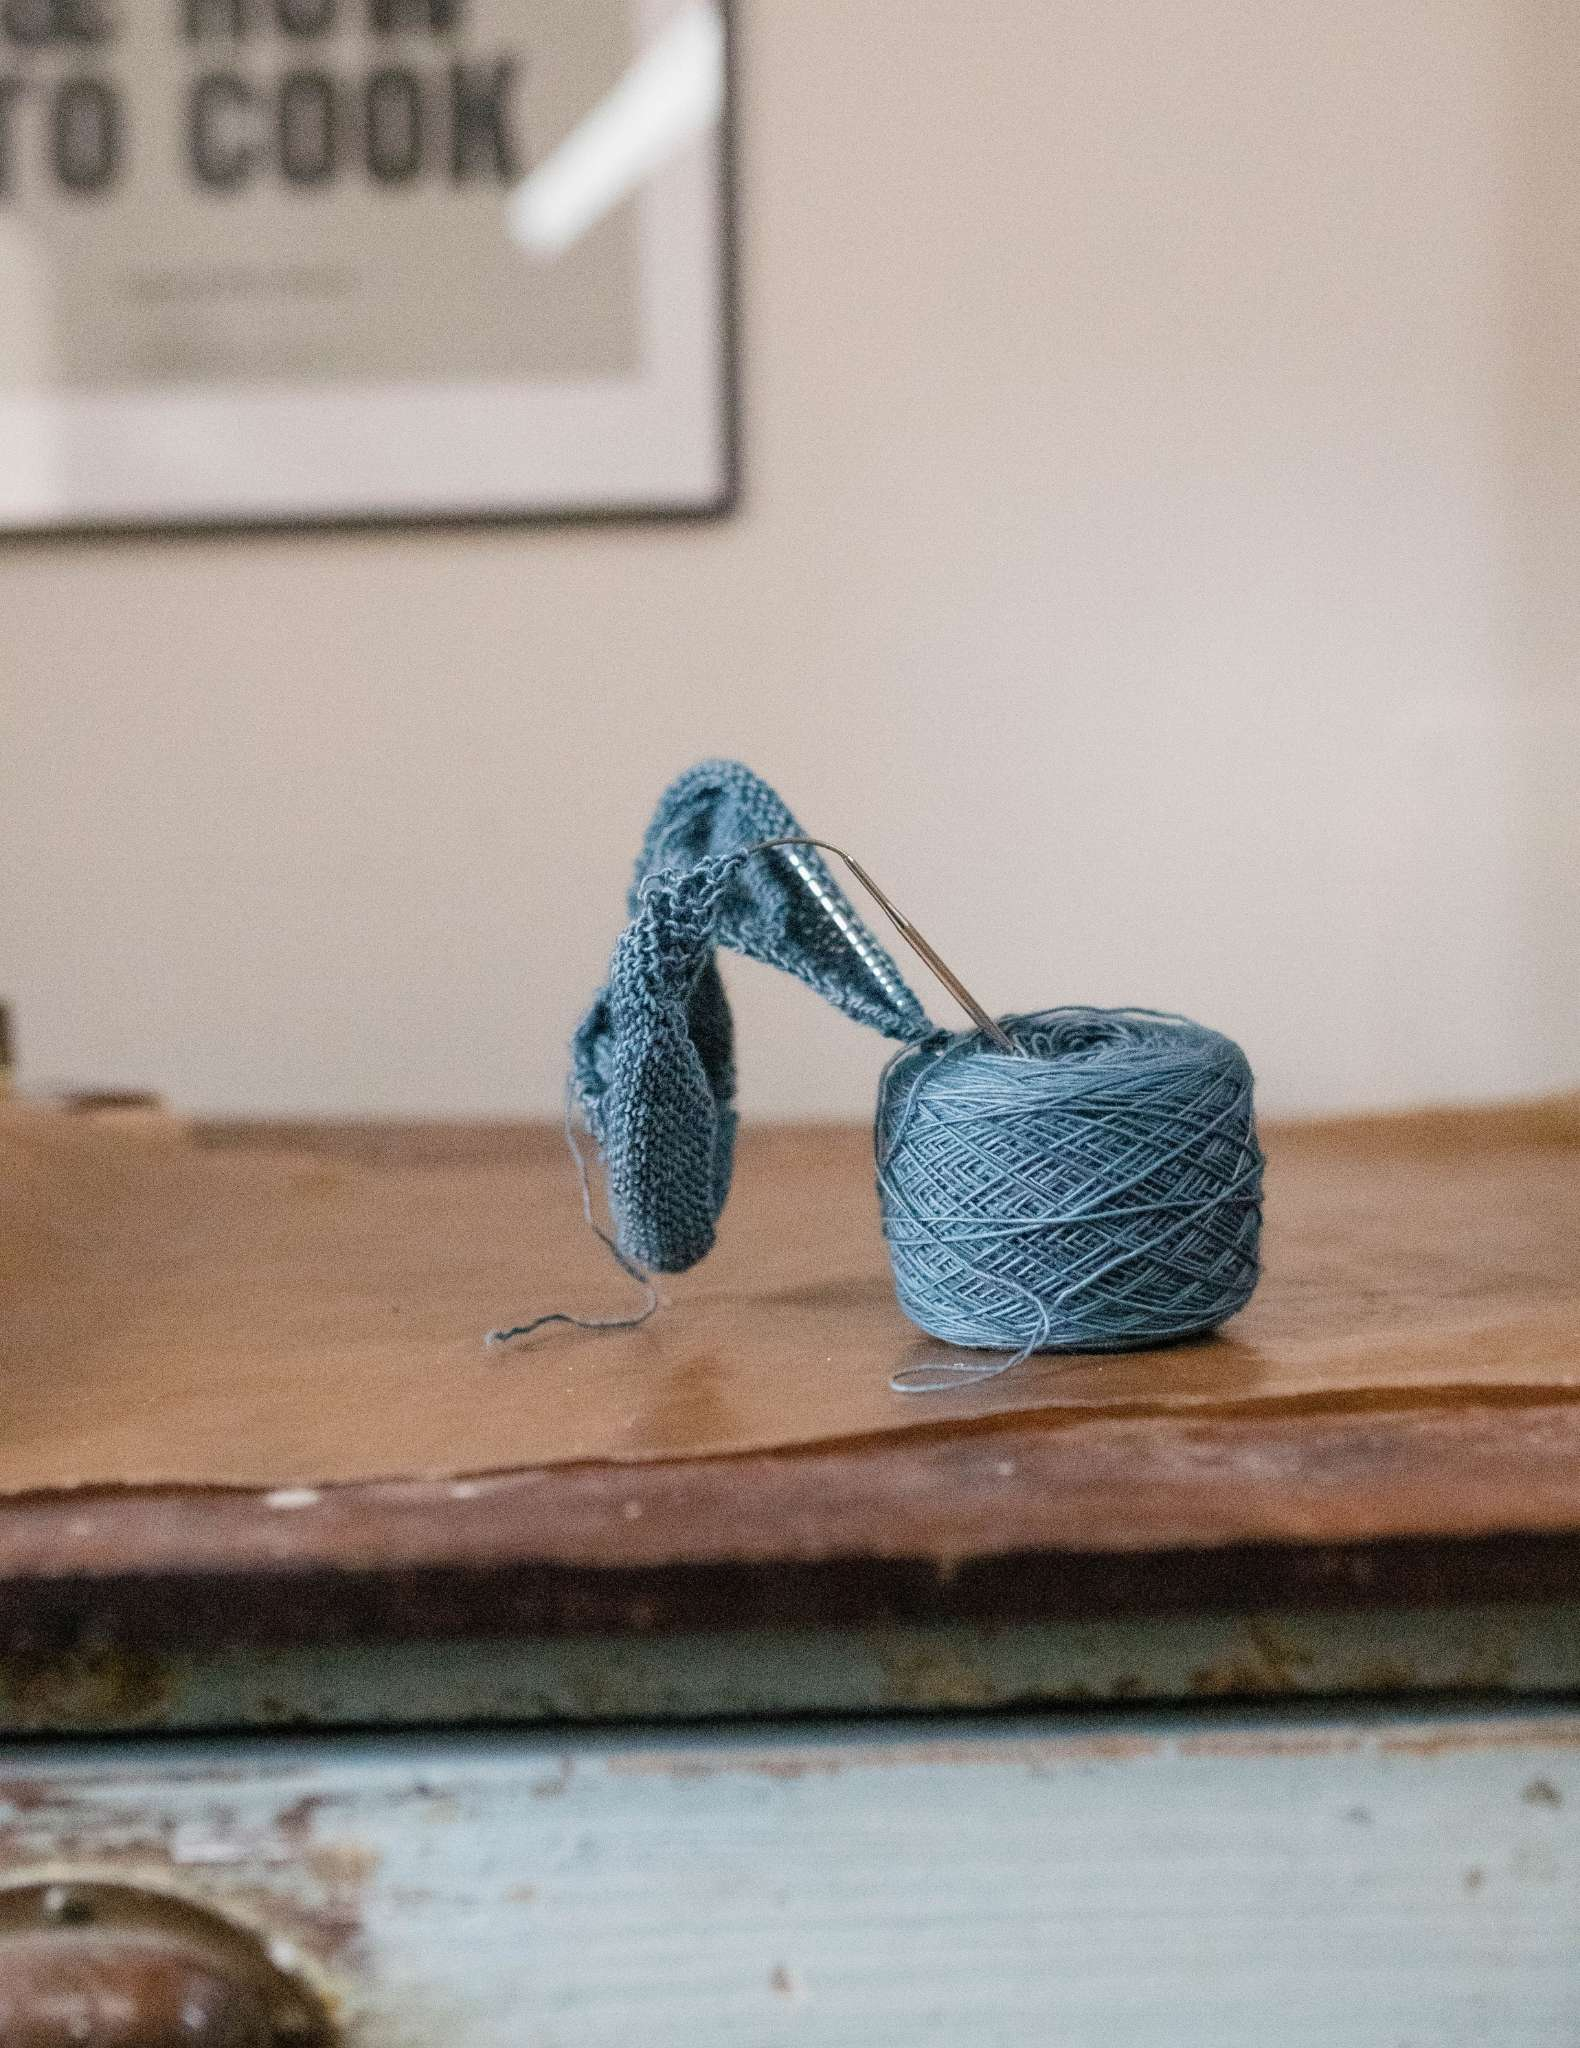 A ball of blue yarn with a project on the needles sticking out of the top of it, sitting on a wooden surface in front of a wall with an art print.